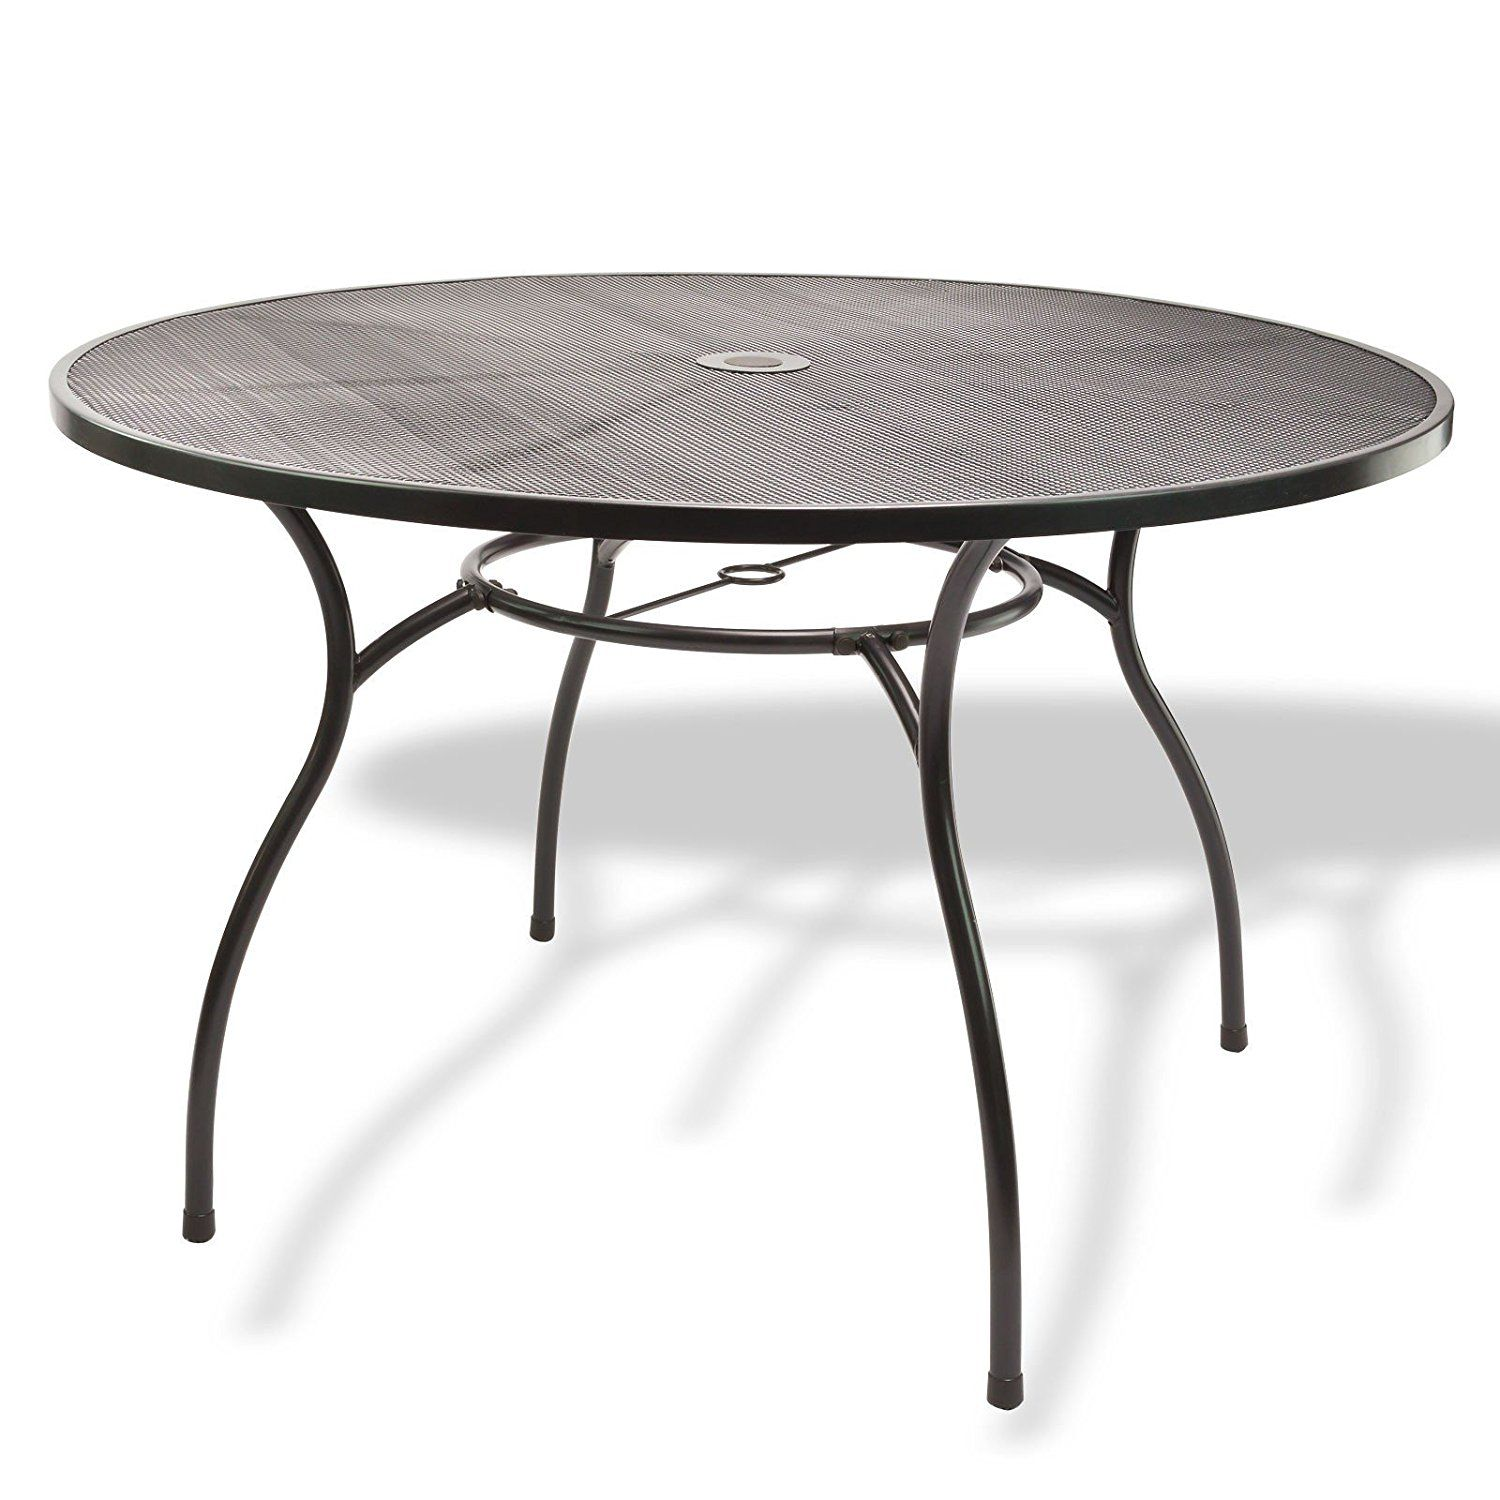 dema metal table round las vegas design 120 x 71 cm amazon - Garden Furniture Las Vegas